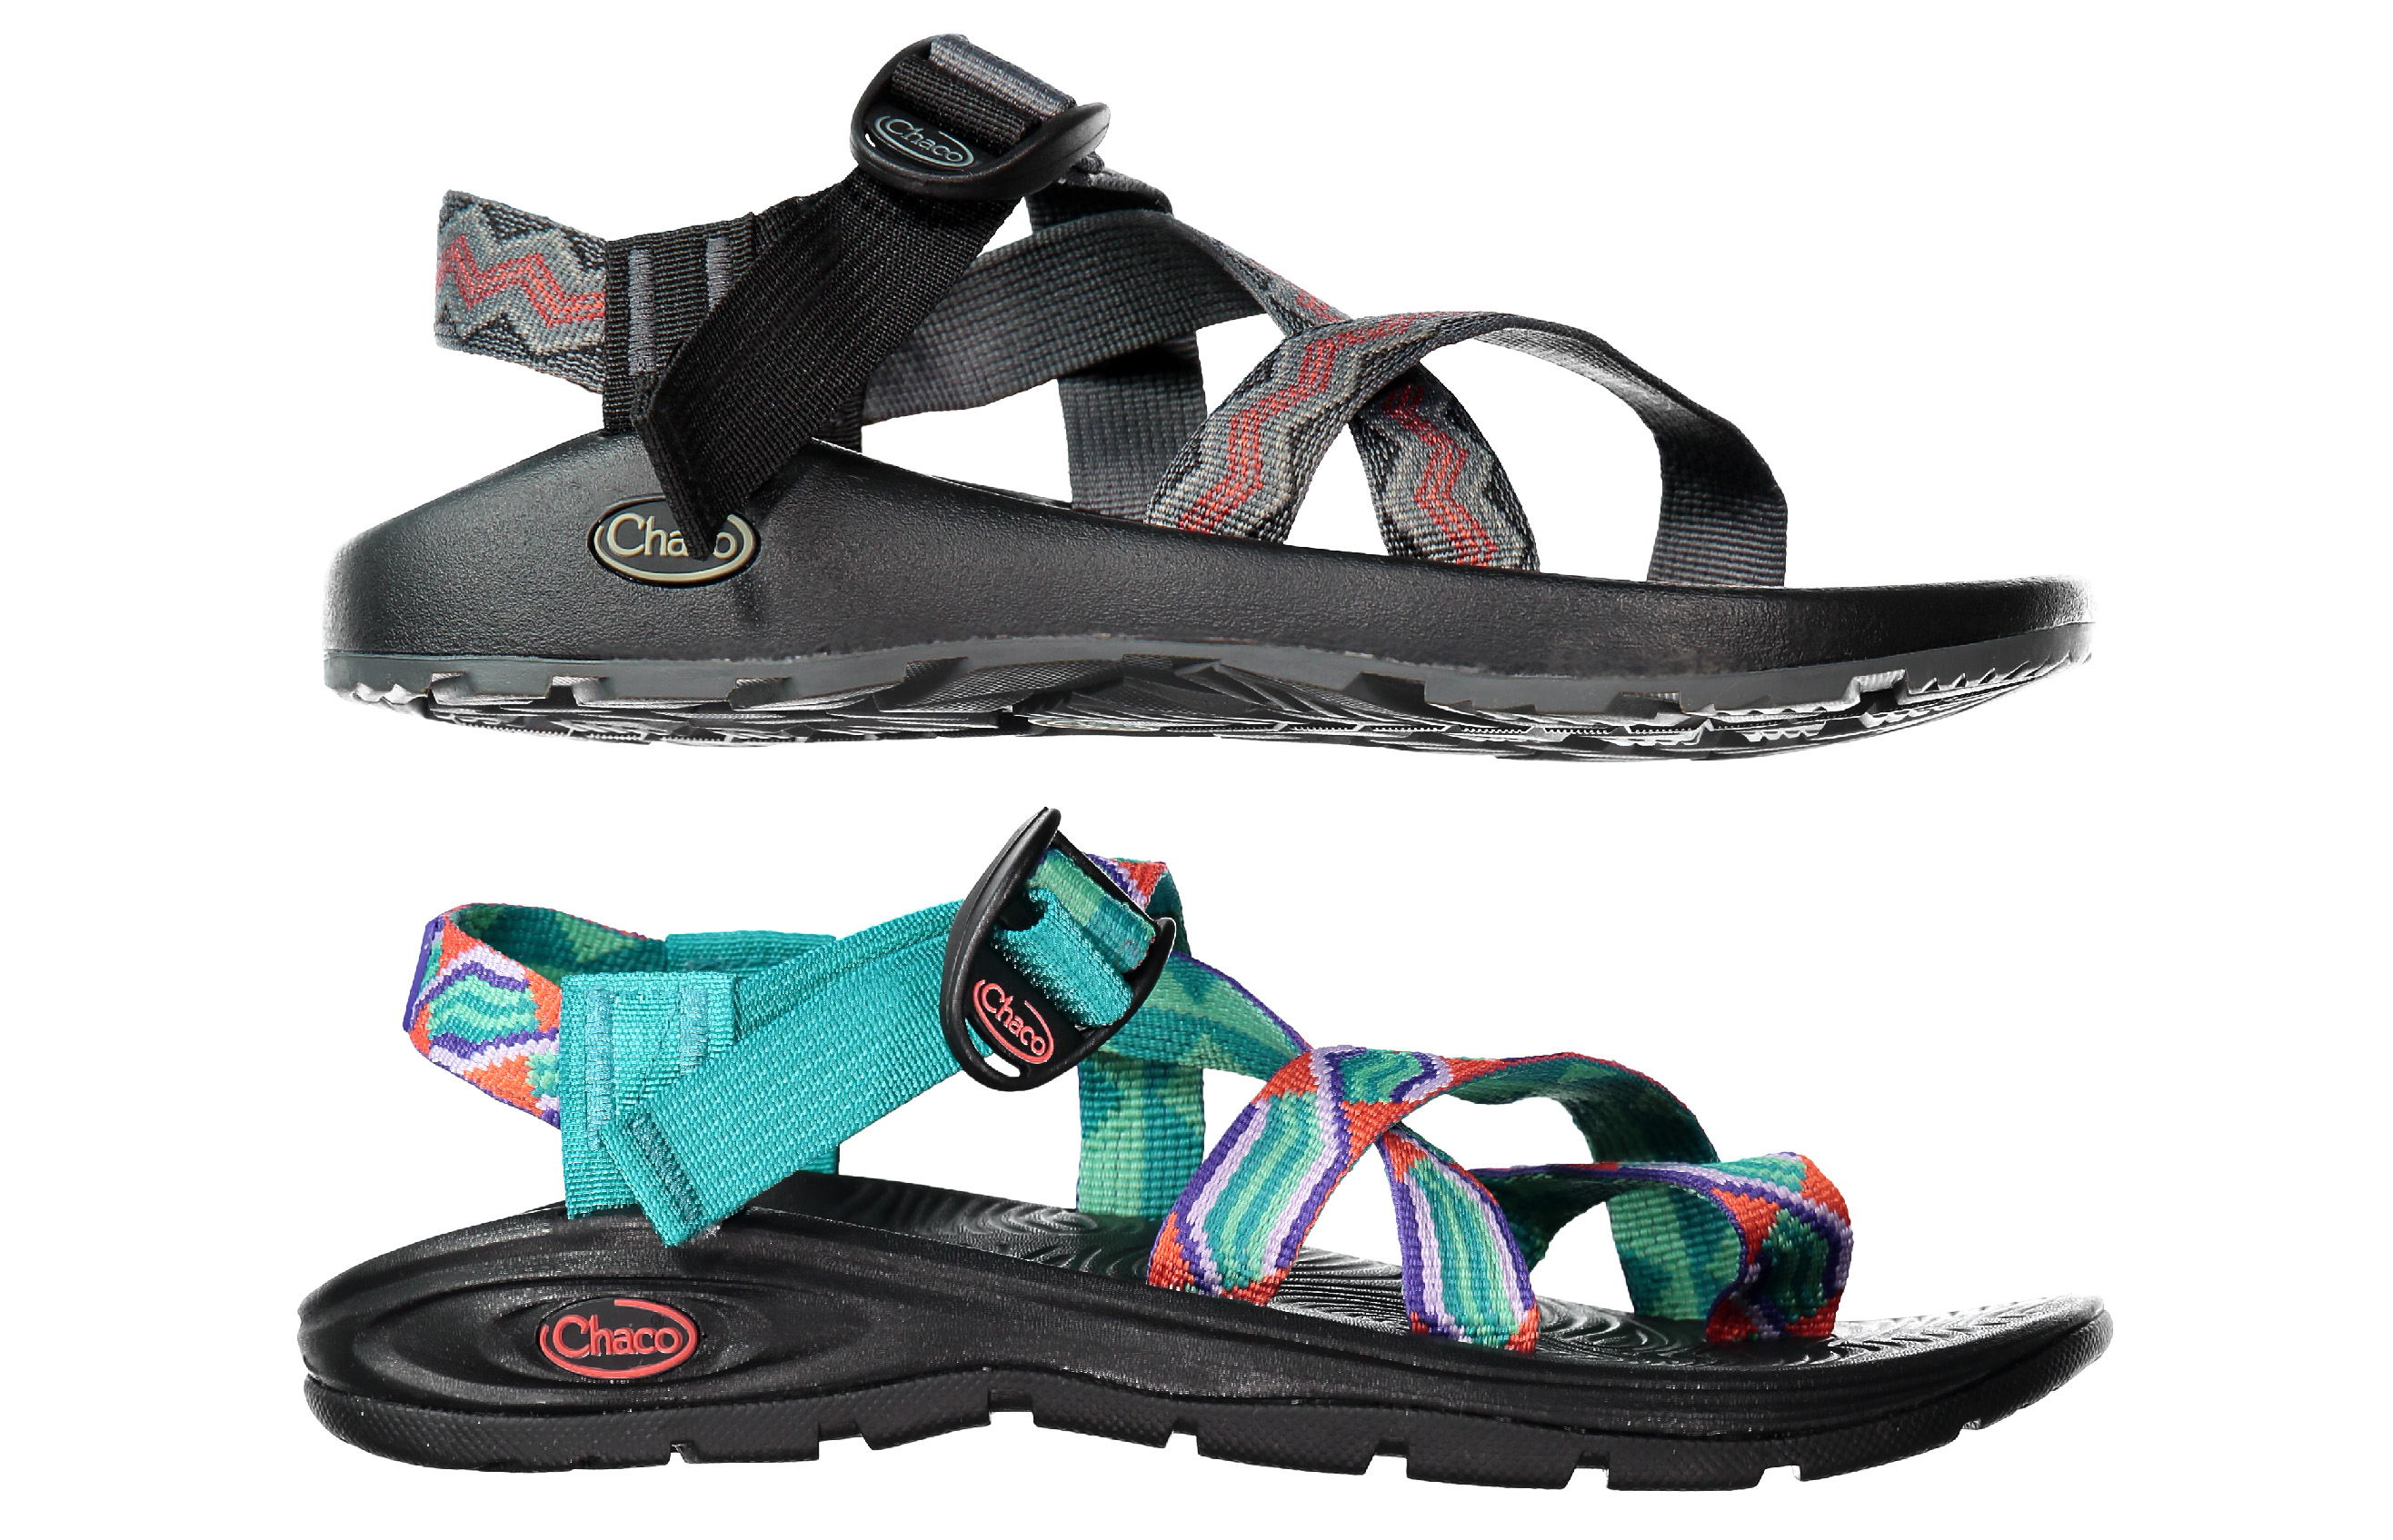 Nov 29, · Extra 35% off Sale Sandals. Automatically applied in cart. Learn more For a limited time receive an additional 35% off already reduced sandal prices. Discount applied automatically in cart. Offer valid on sale product only. Offer not valid on Chaco ProDeal. Other exclusions may apply.